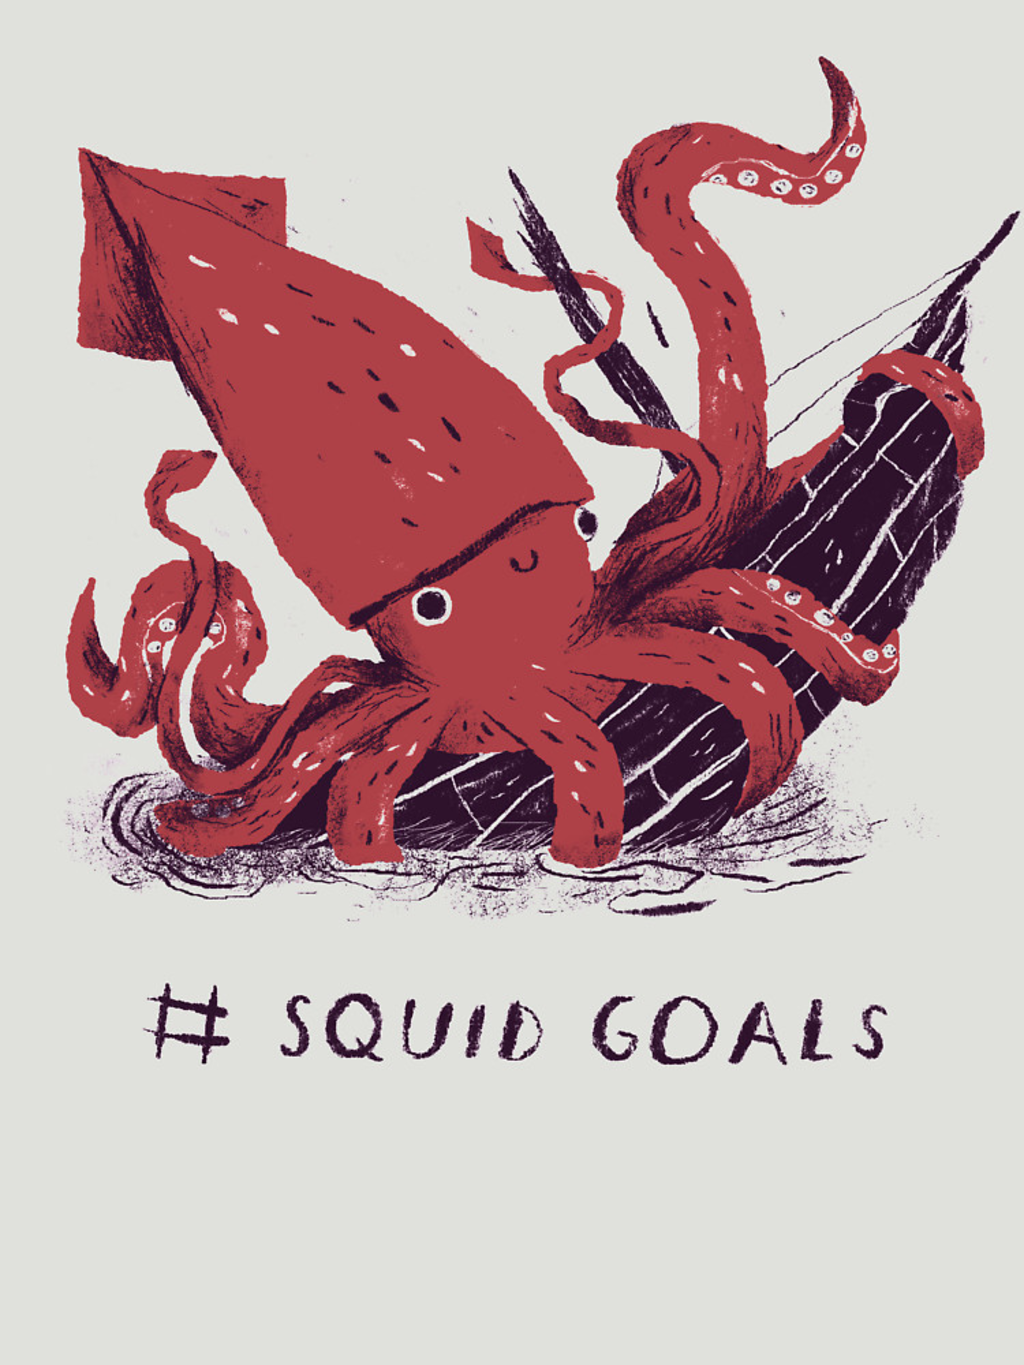 RedBubble: Squid Goals